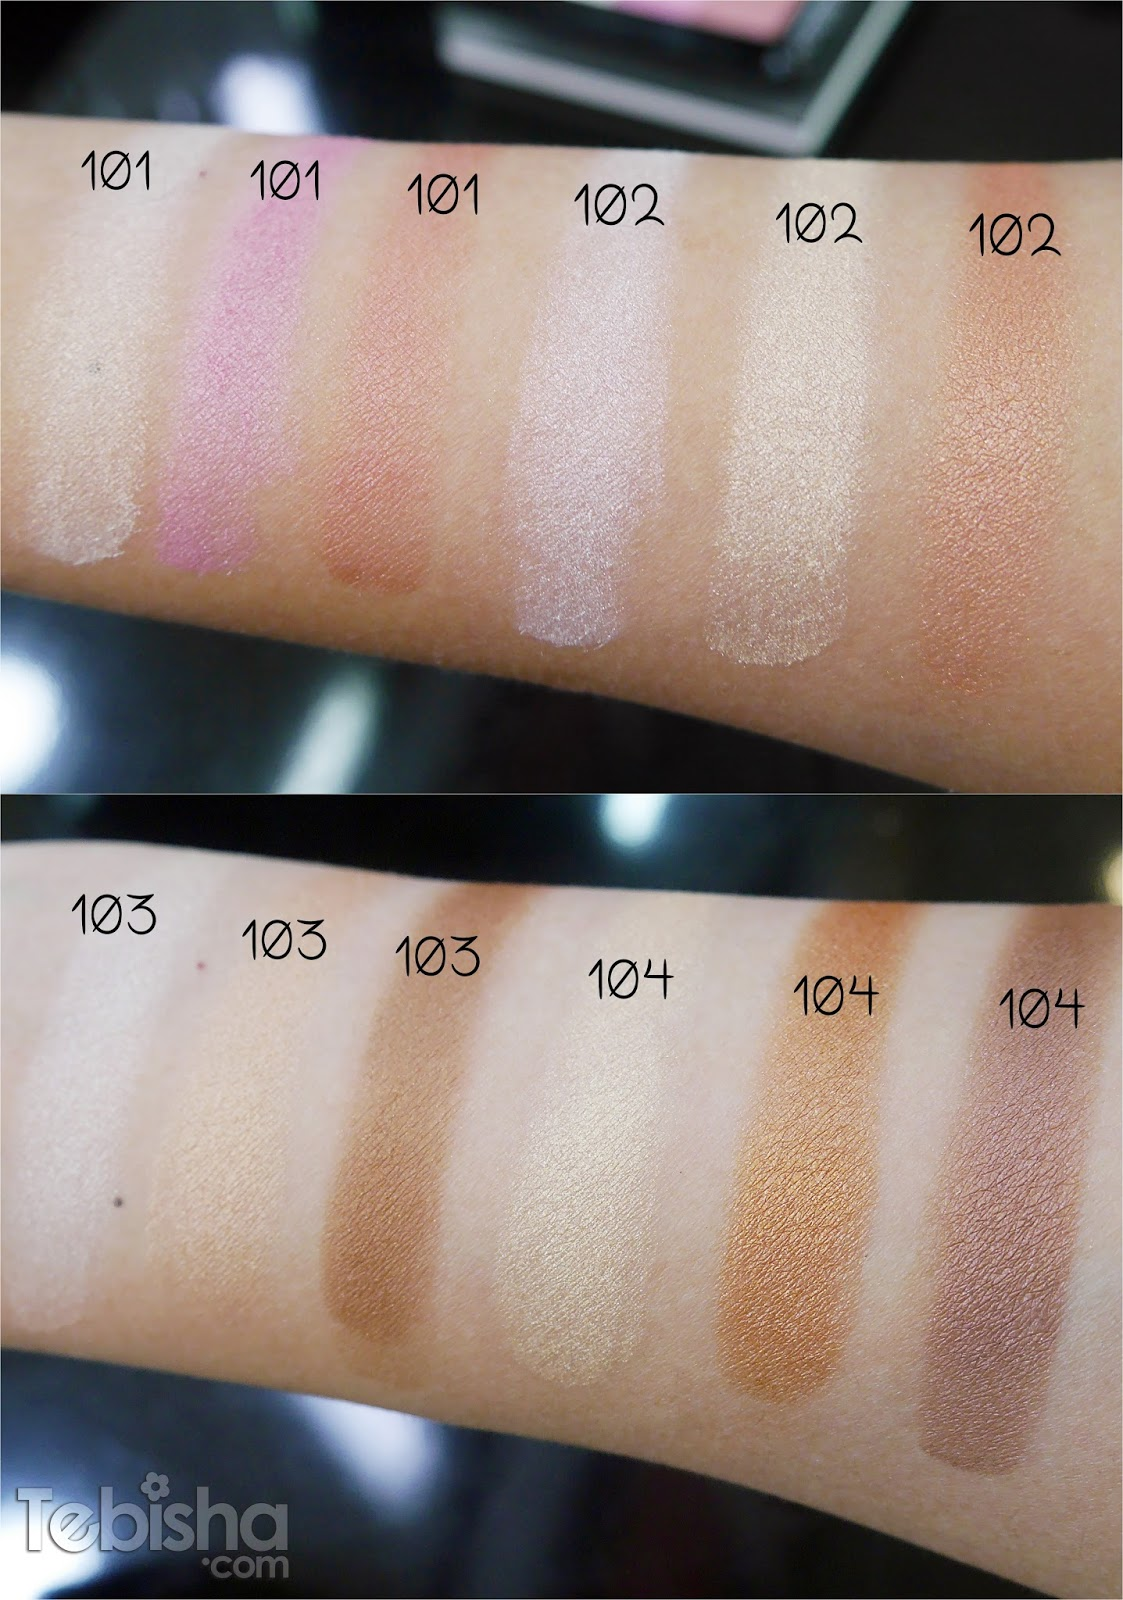 inglot october 2015 new releases  highlighter trio  matte